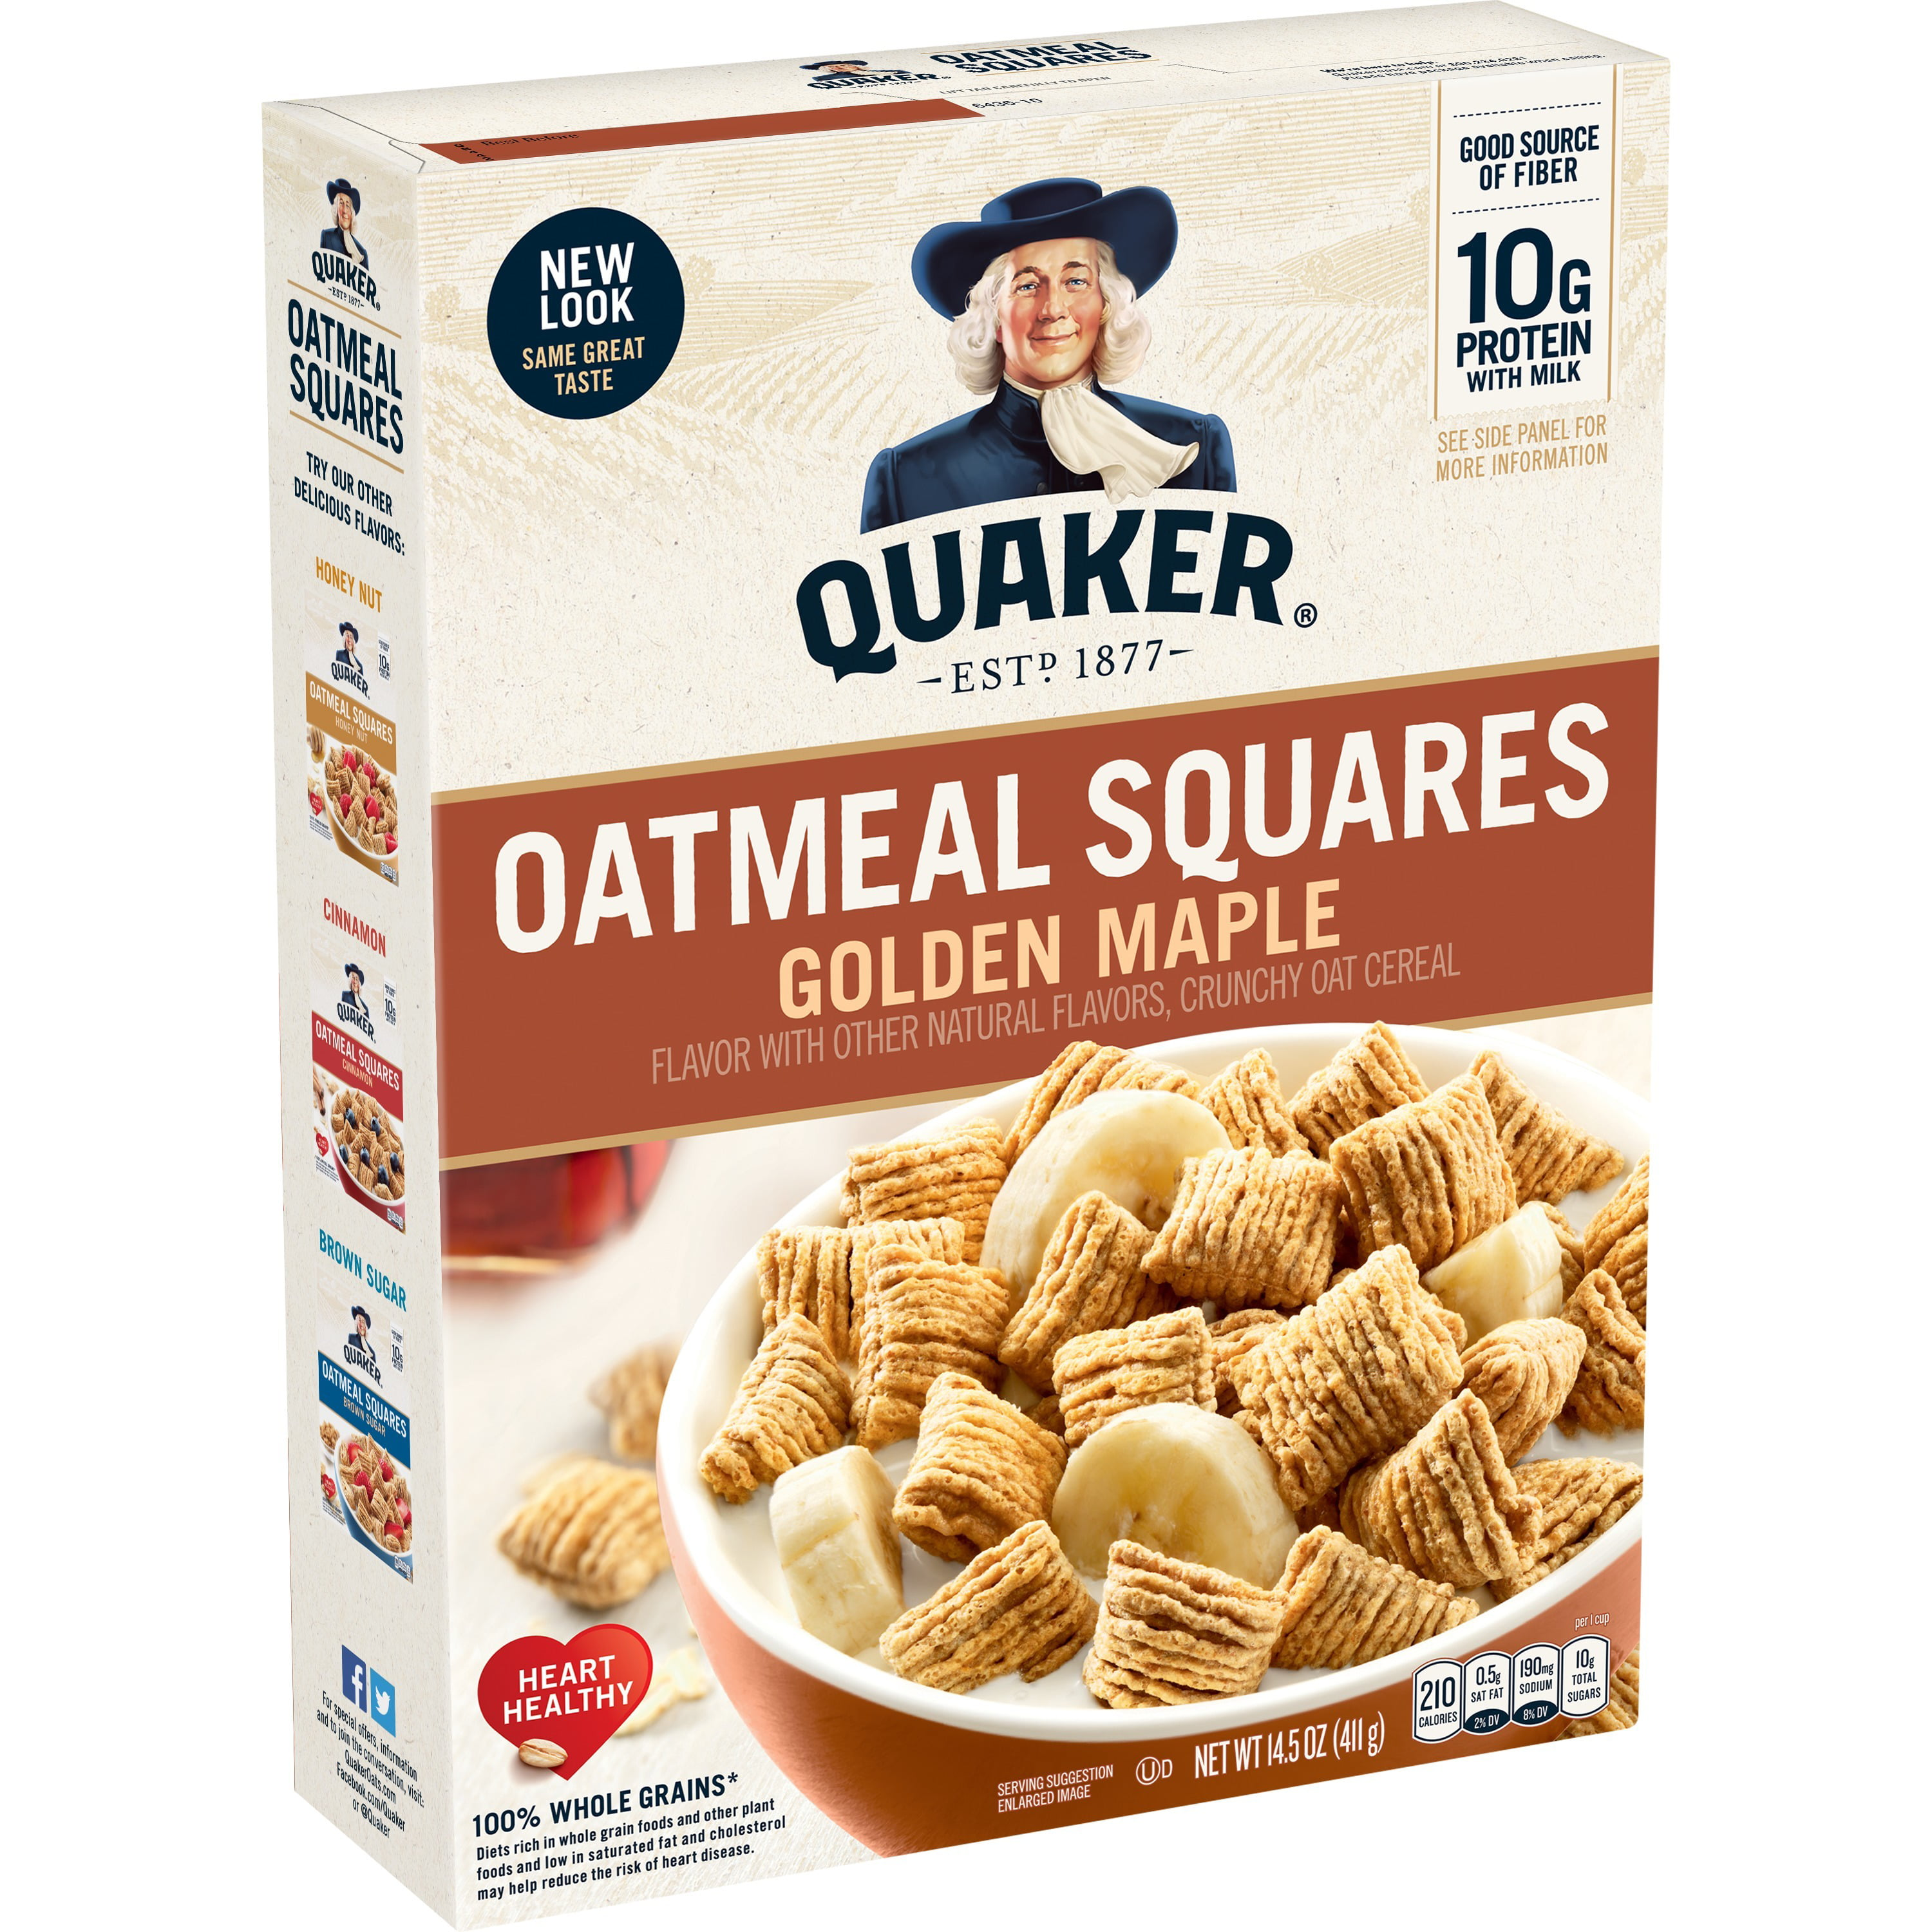 Quaker Oatmeal Squares Golden Maple Crunchy Oat Cereal 14